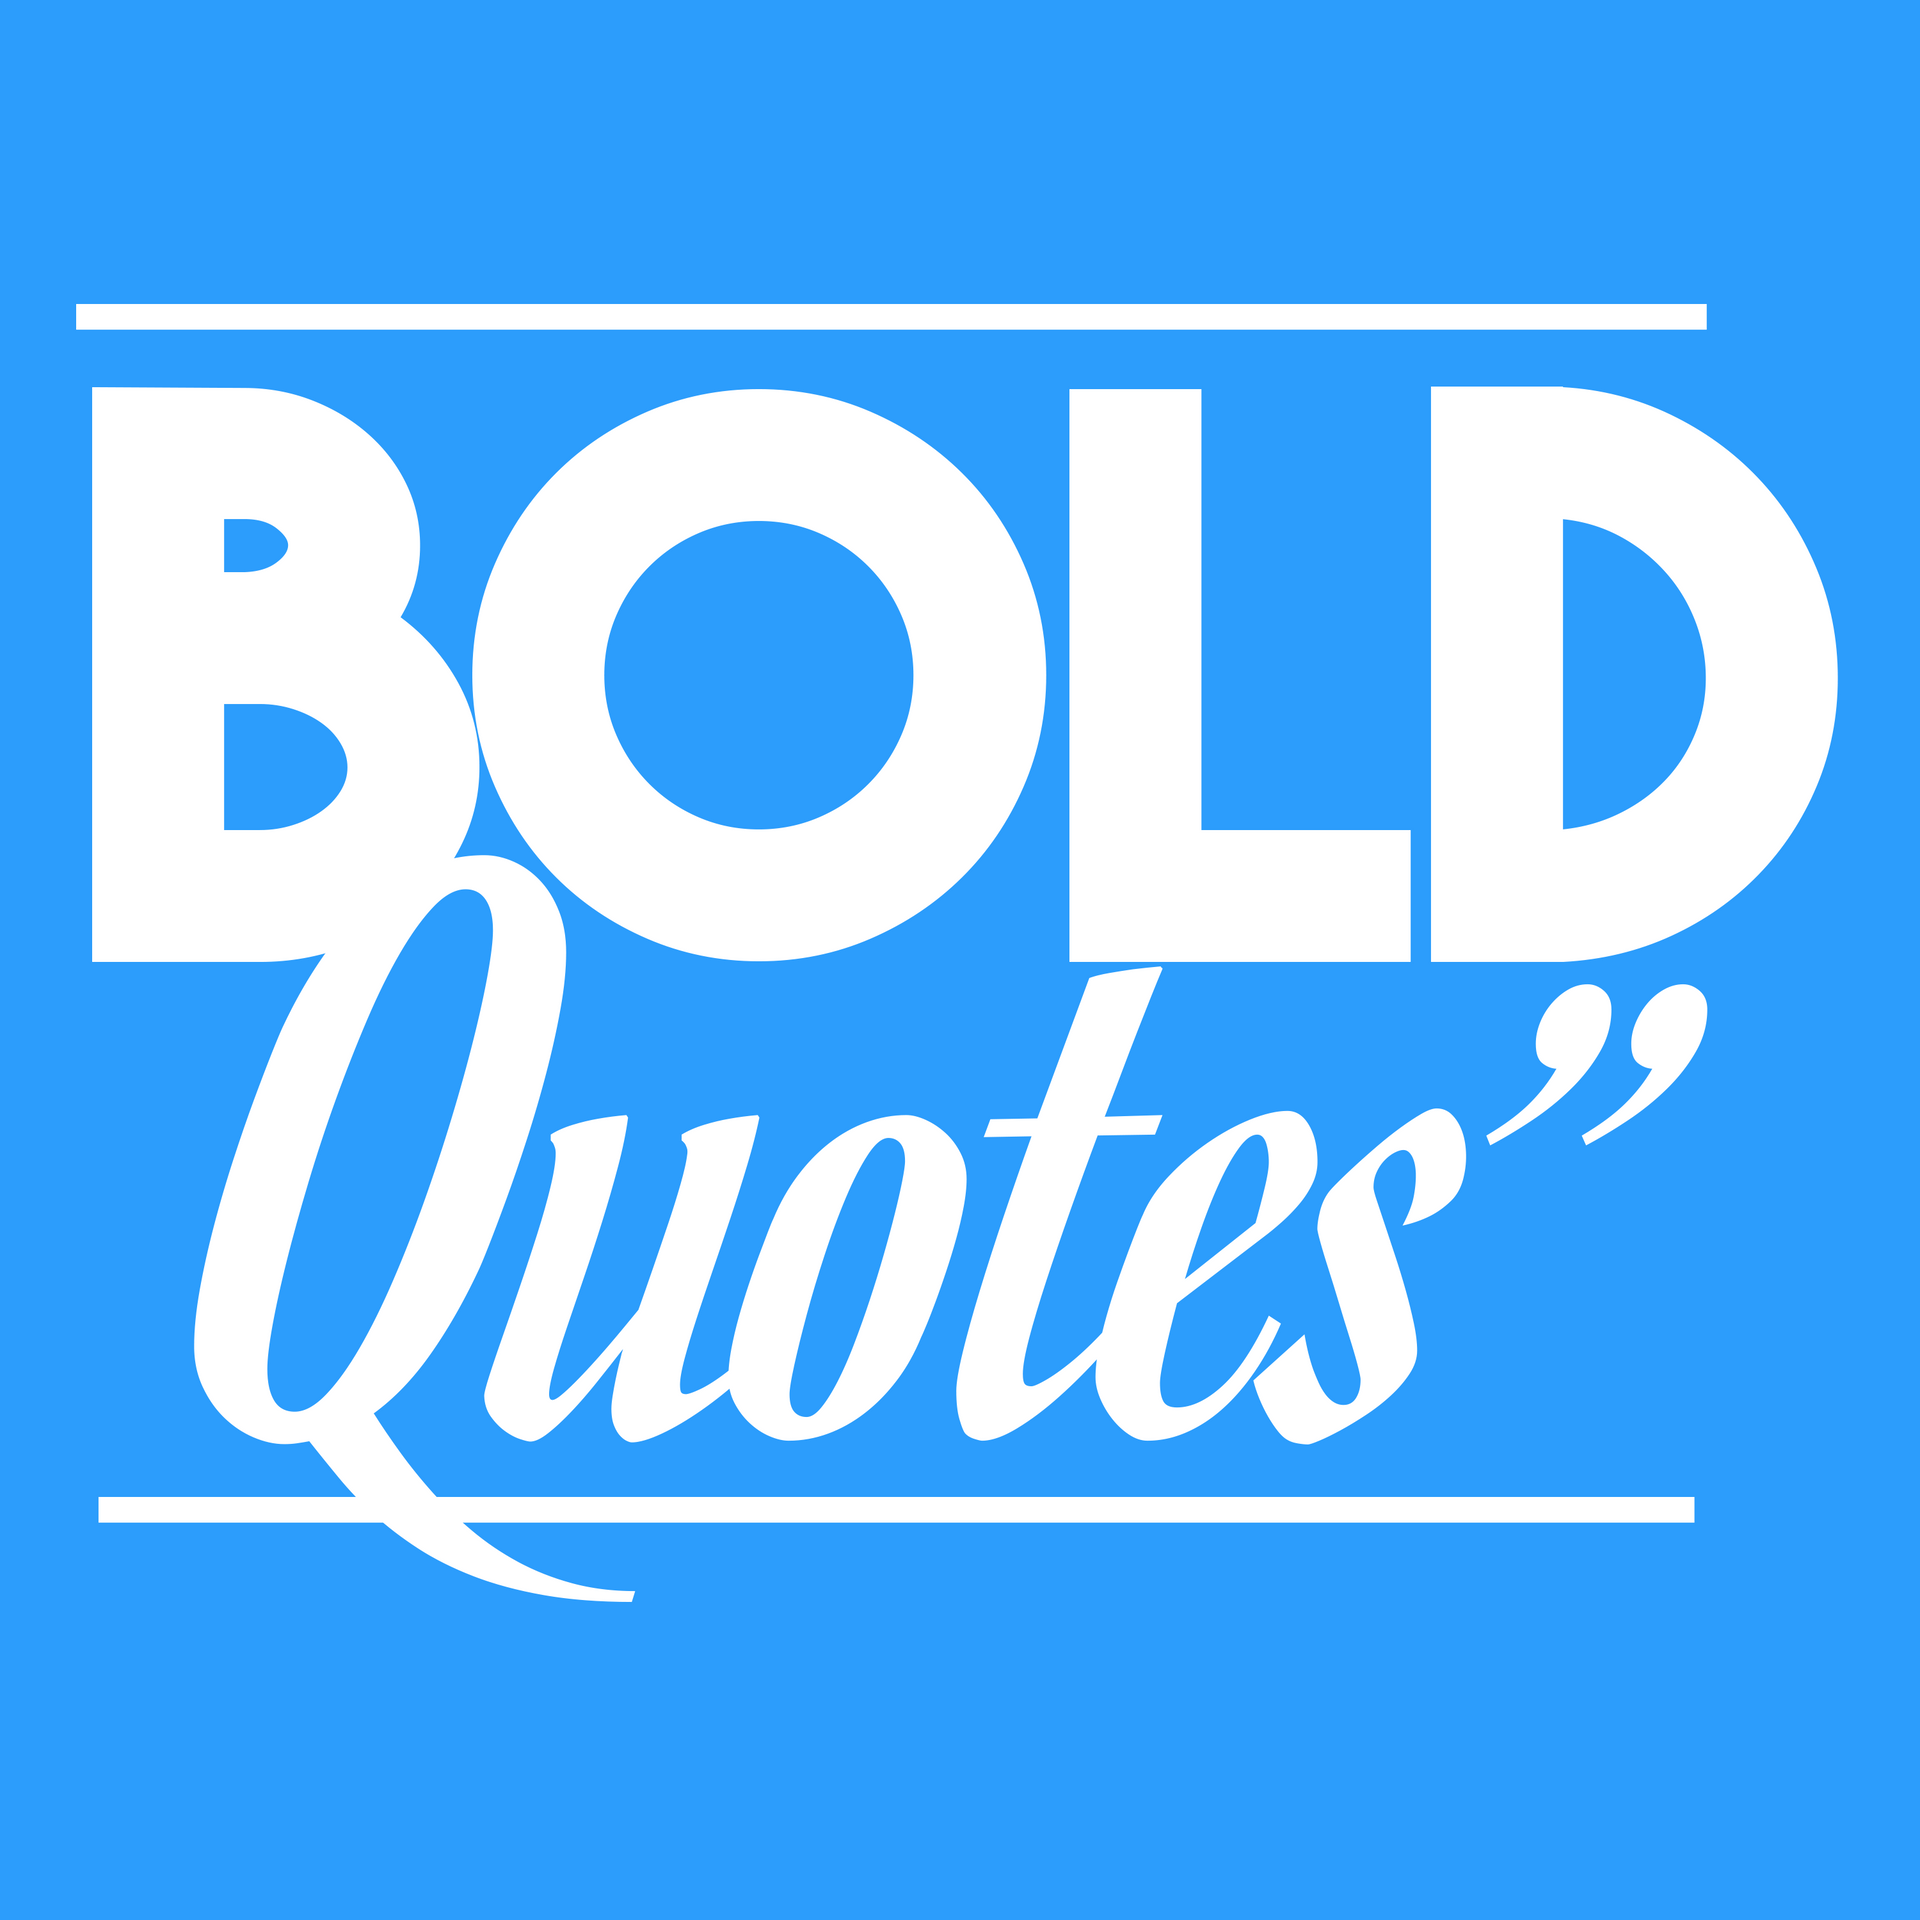 Bold Quotes Logo 2 - Blue Background.png